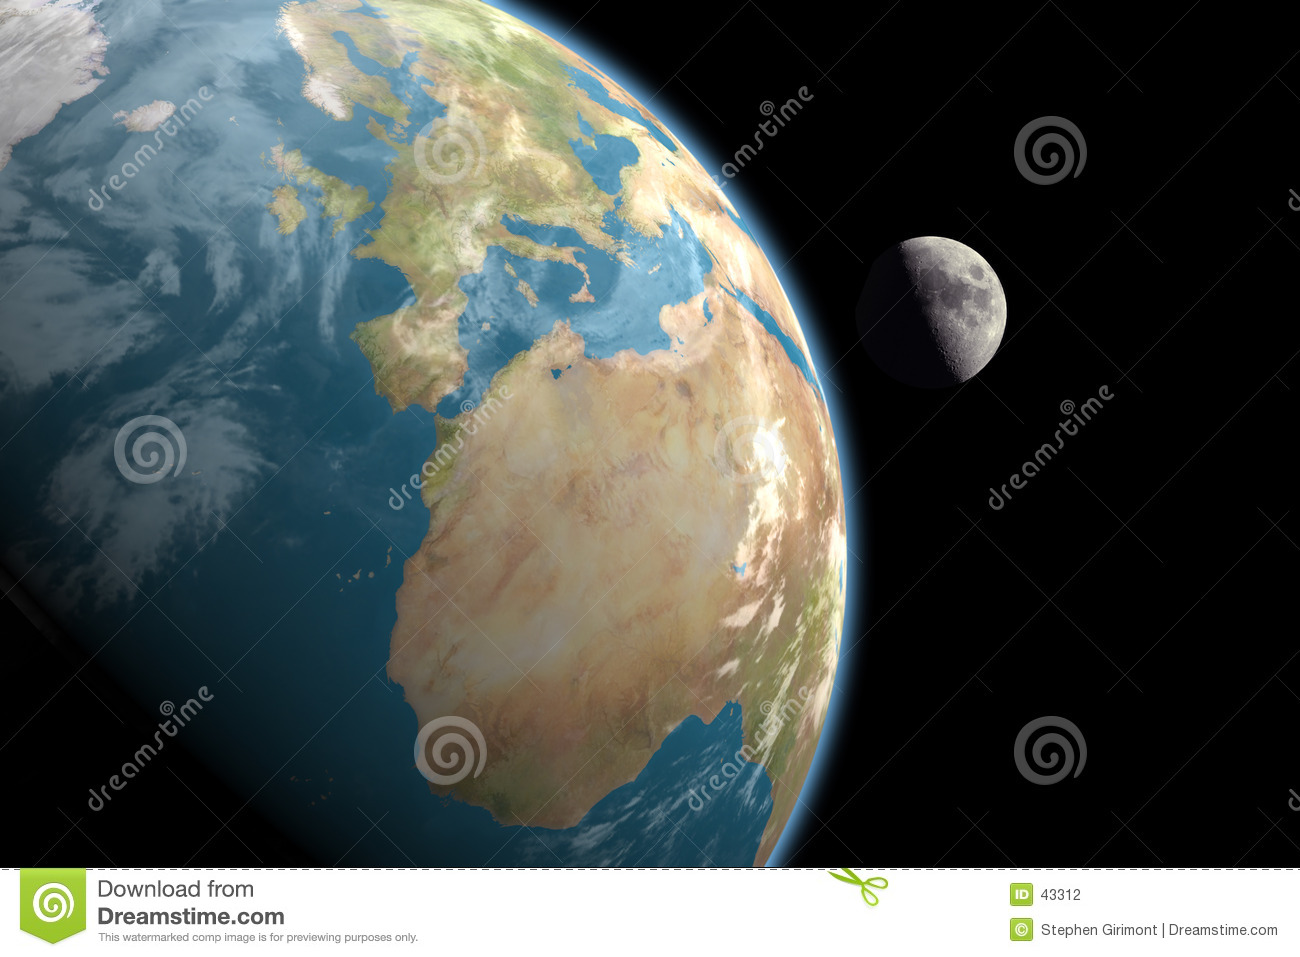 Europe, Africa and Moon, no stars